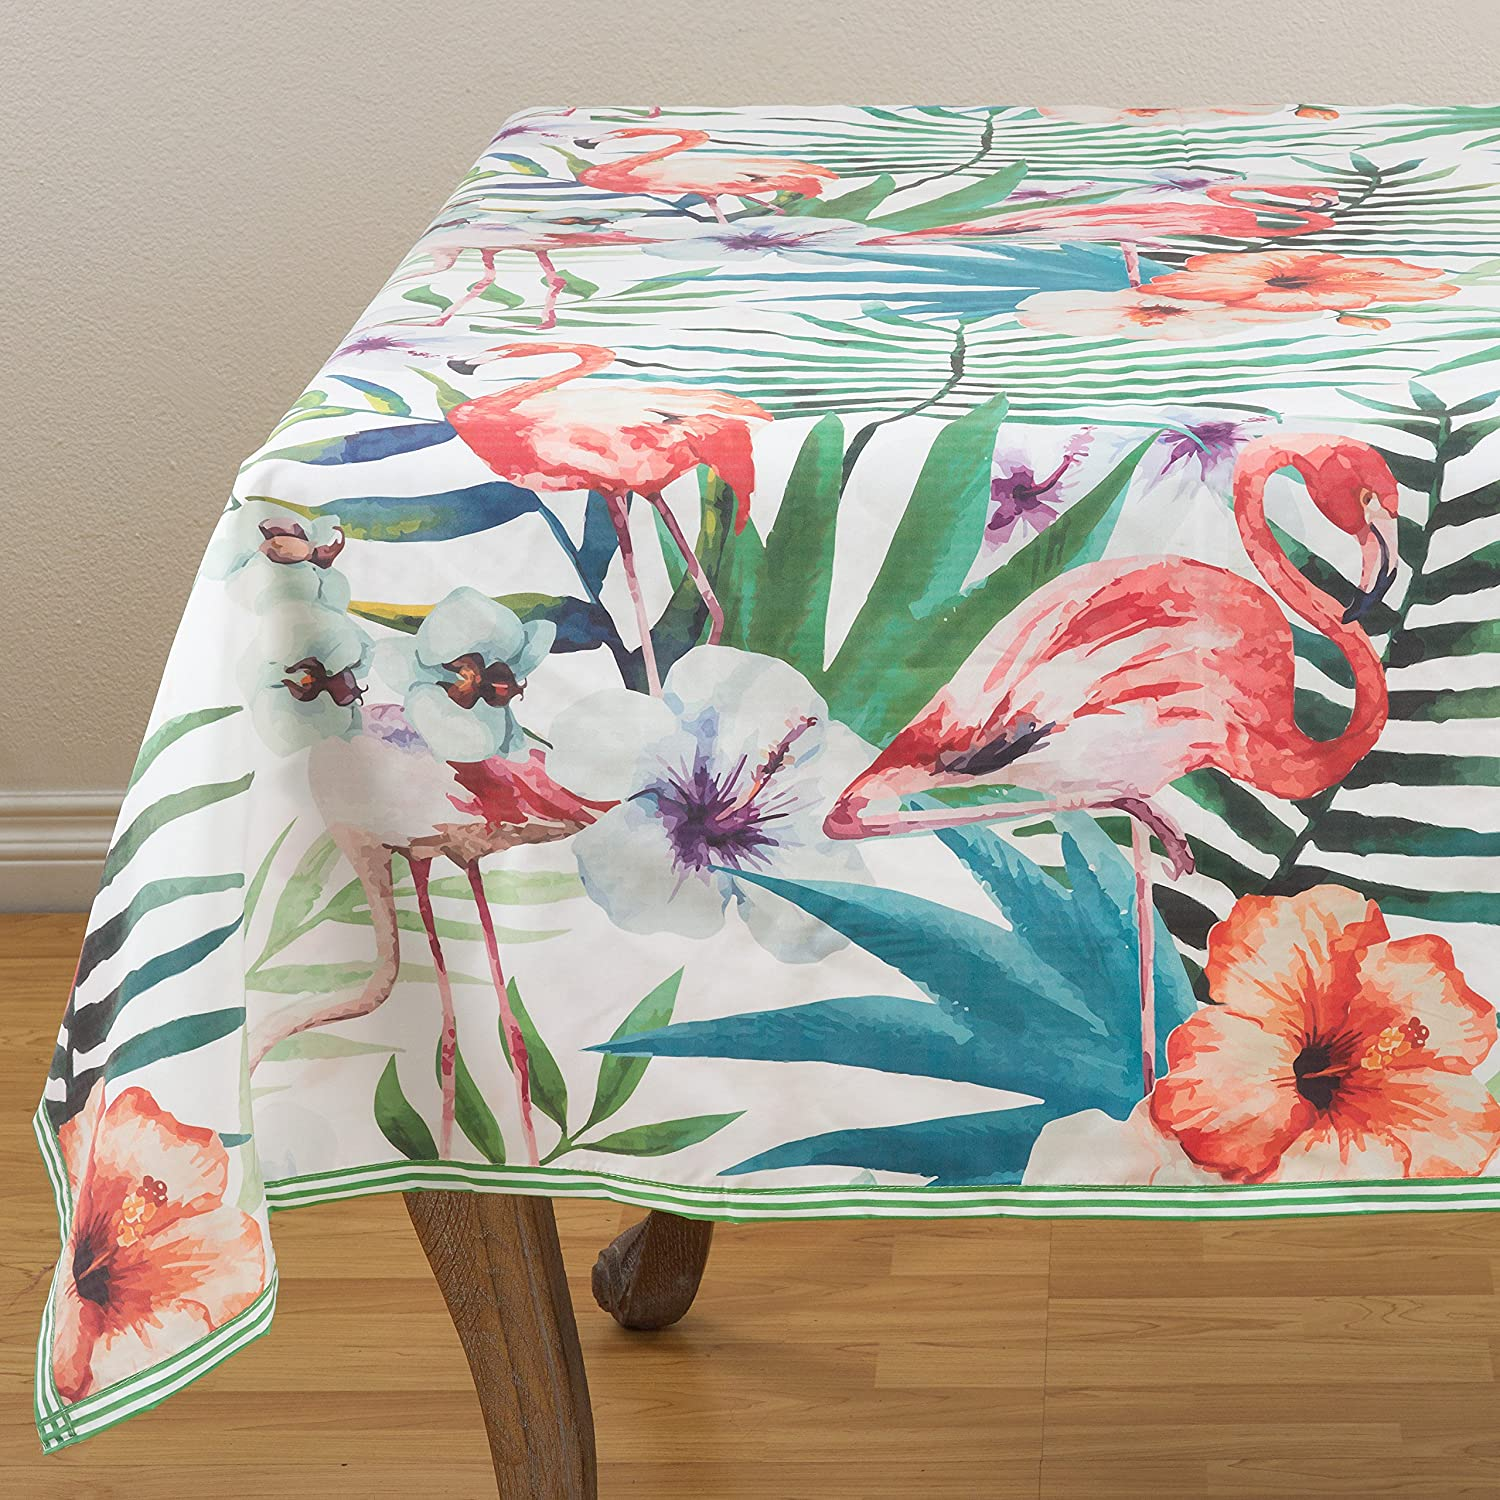 SARO LIFESTYLE 1456.M55S Watercolor Flamingo Print Tropical Tablecloths 55 Multicolor